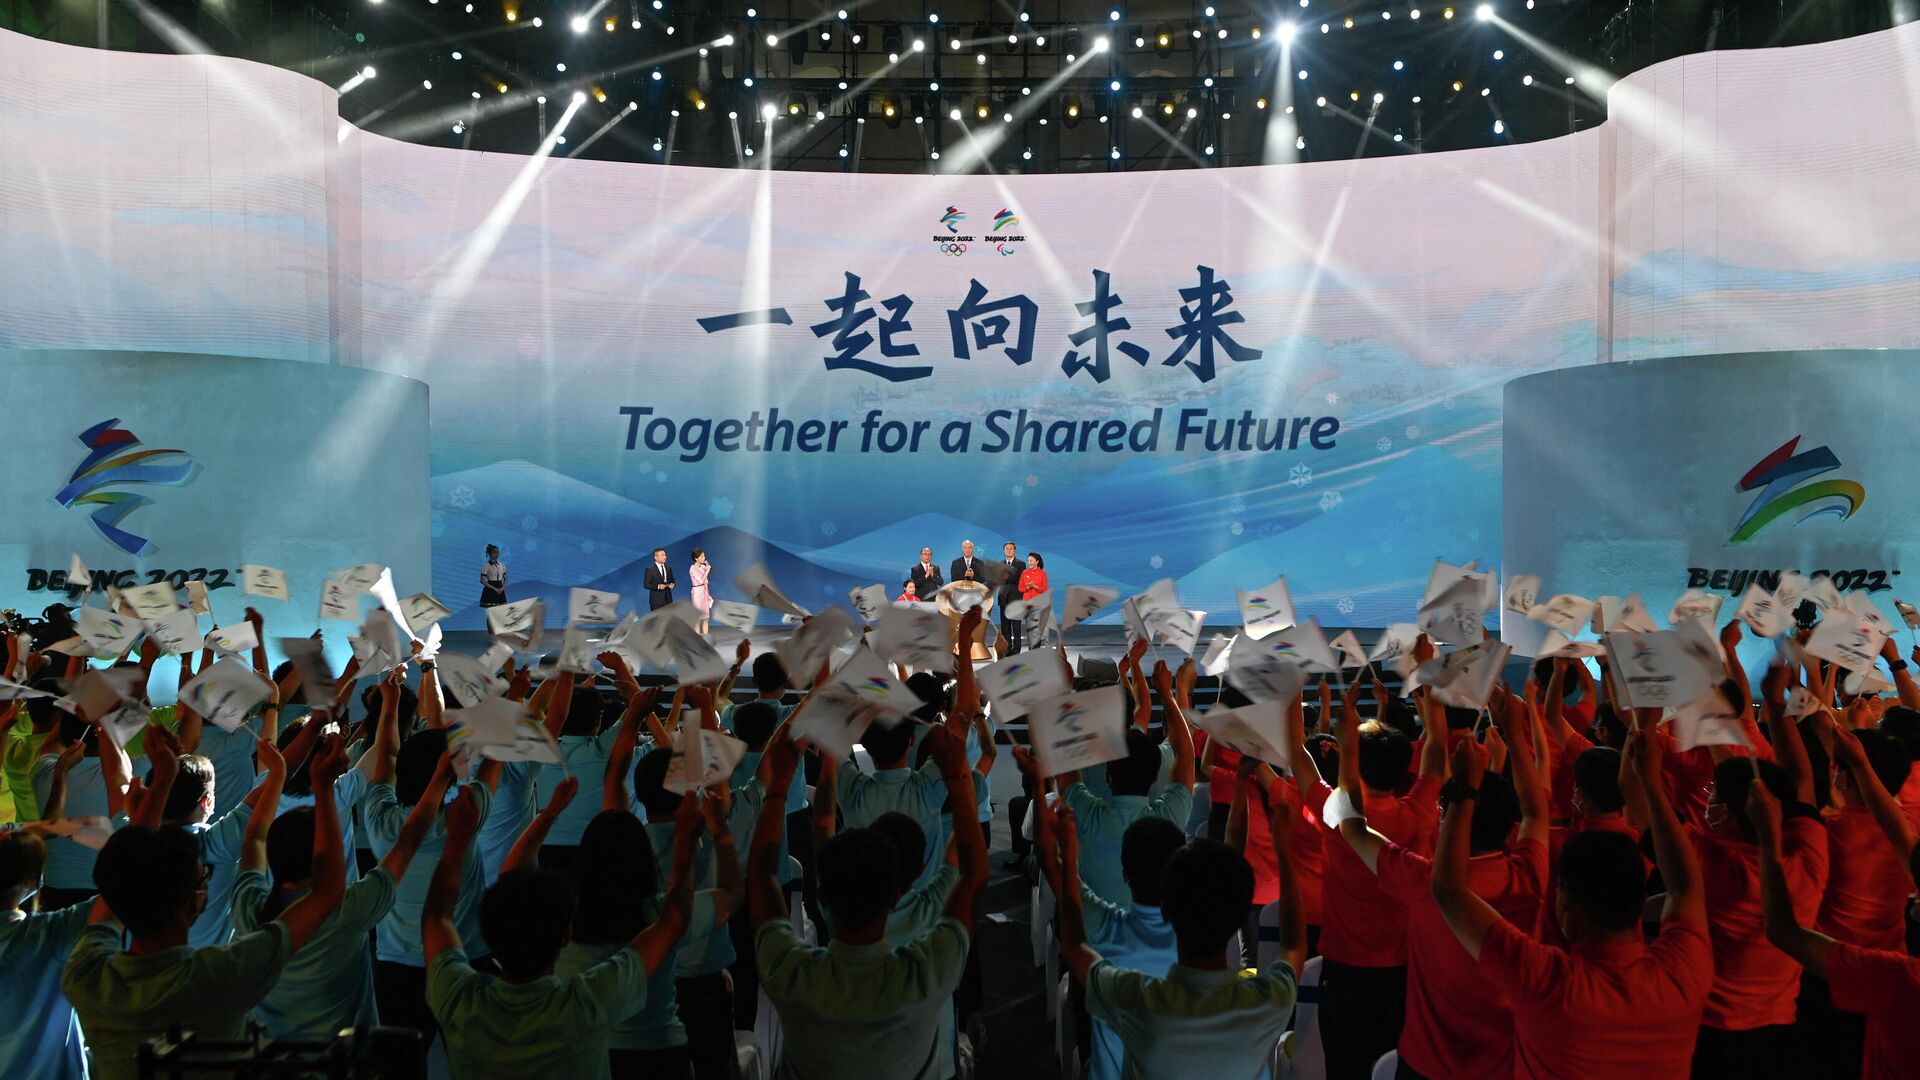 'Together for a Shared Future' is displayed during the launch ceremony of the slogan for the Beijing 2022 Olympic and Paralympic Games in Beijing on September 17, 2021. (Photo by WANG Zhao / AFP) - РИА Новости, 1920, 17.09.2021